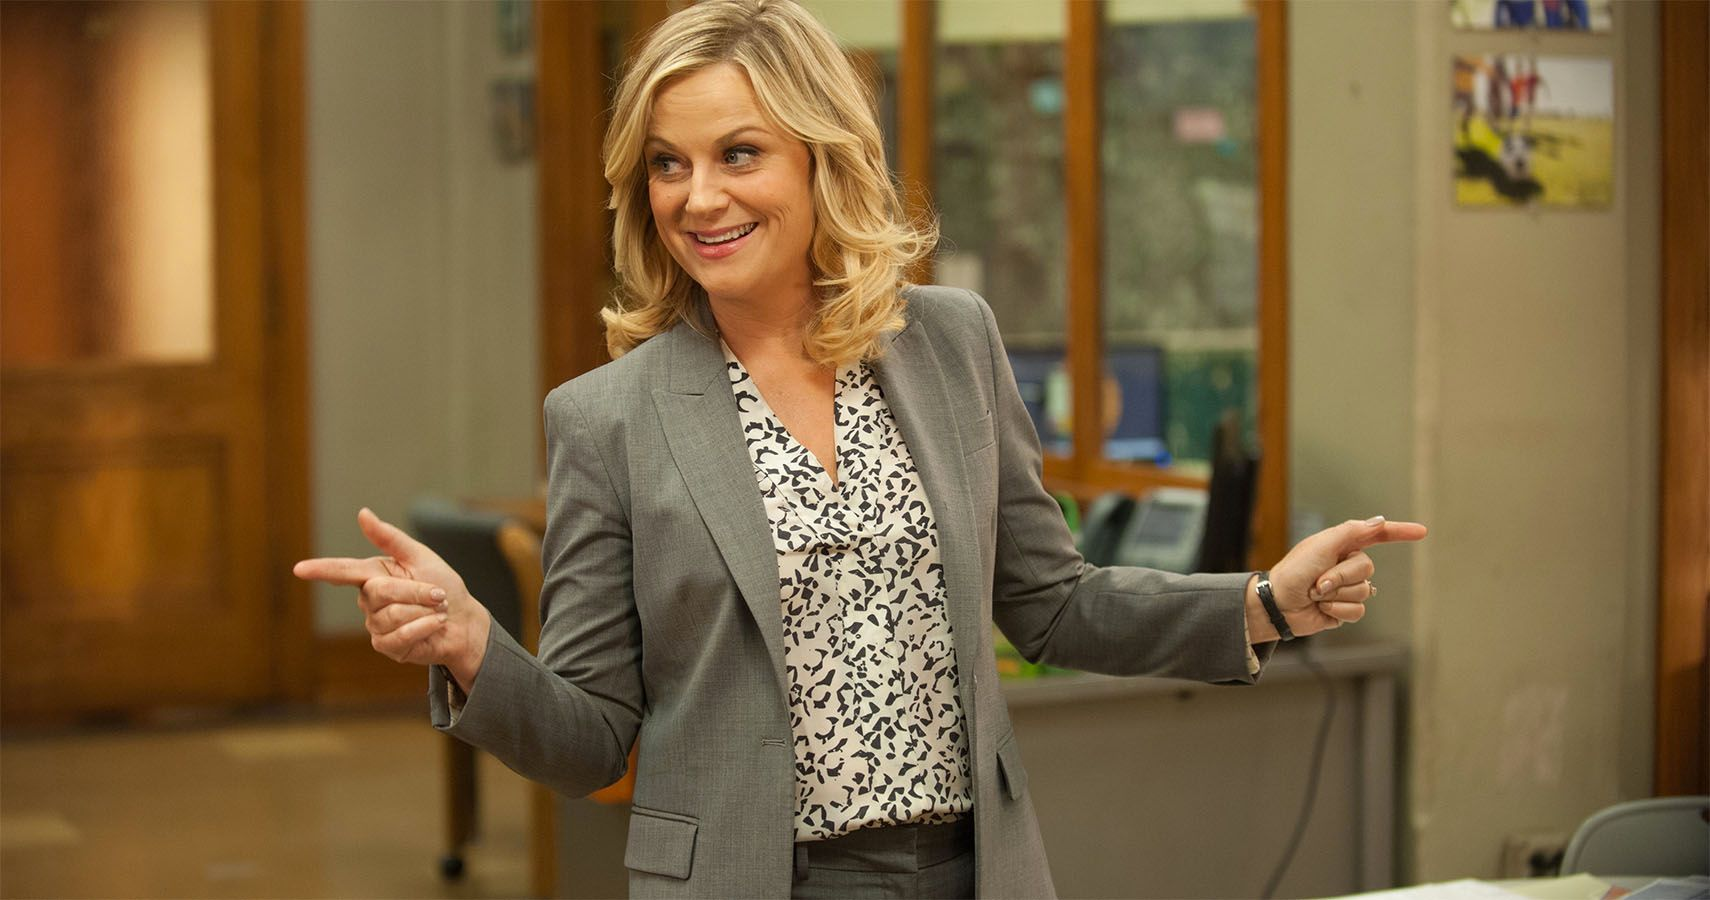 Parks and Recreation: 10 Best Leslie Knope Quotes From The